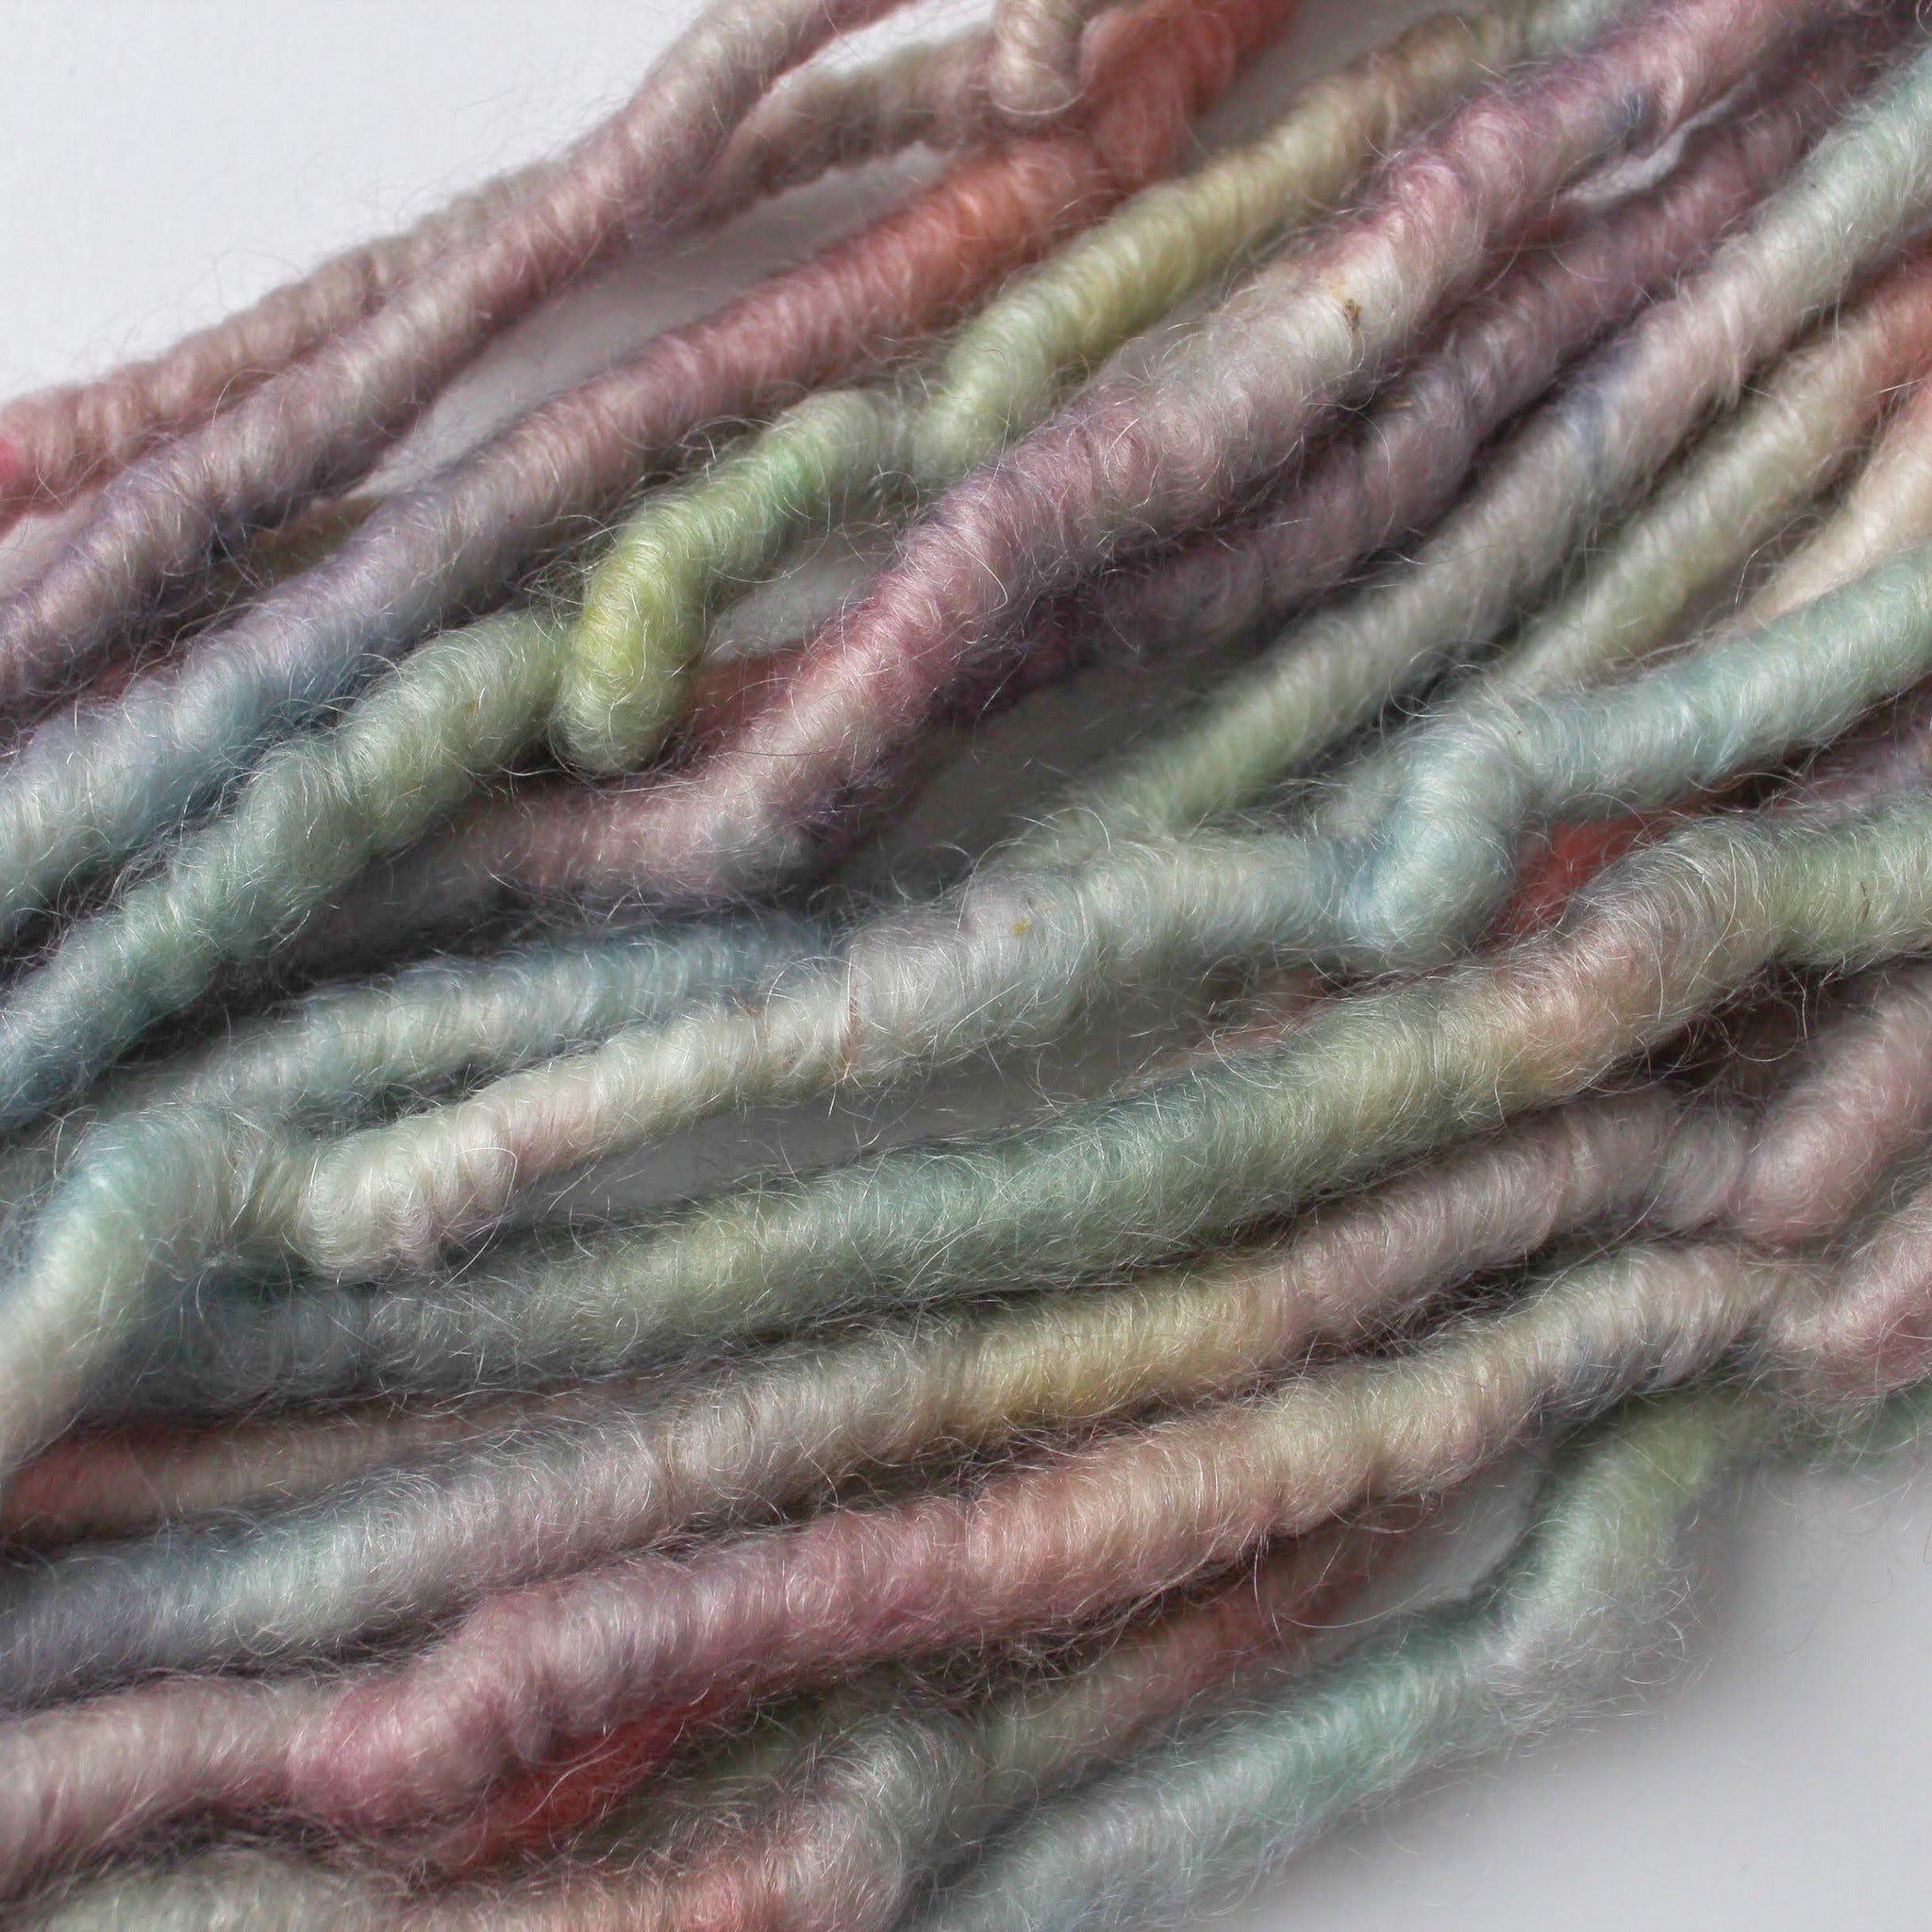 A blend of desert colors hand dyed on corespun  mohair yarn.